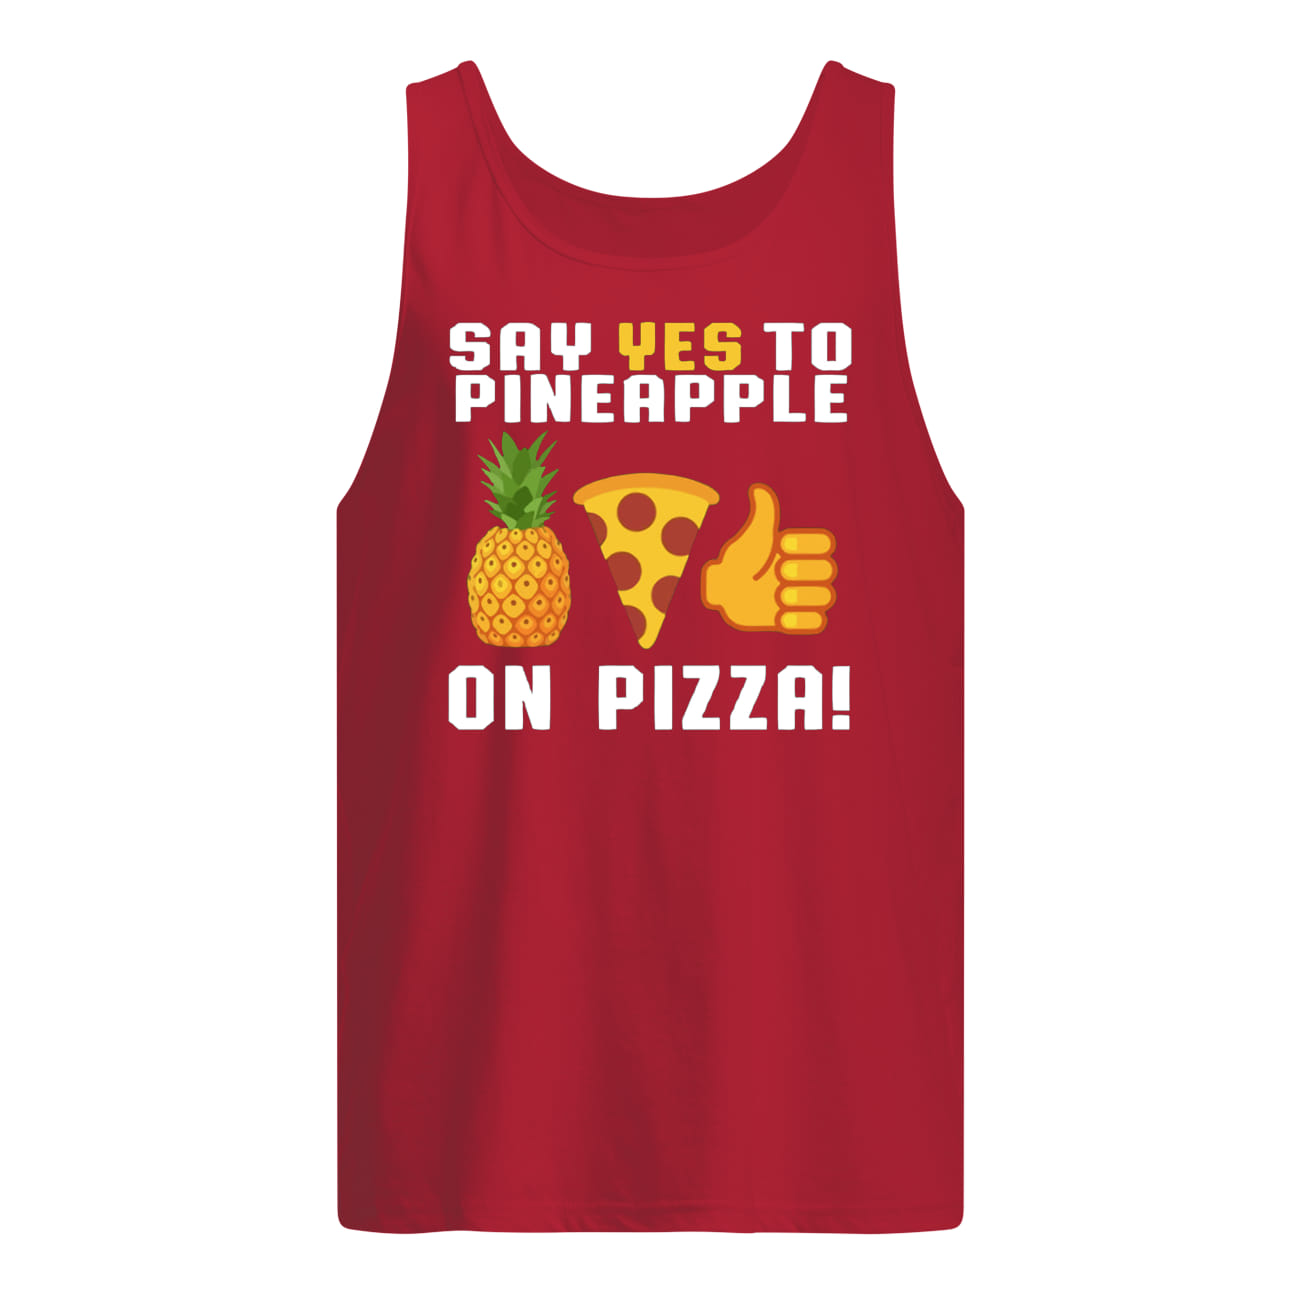 Say yes to pineapple on pizza tank top